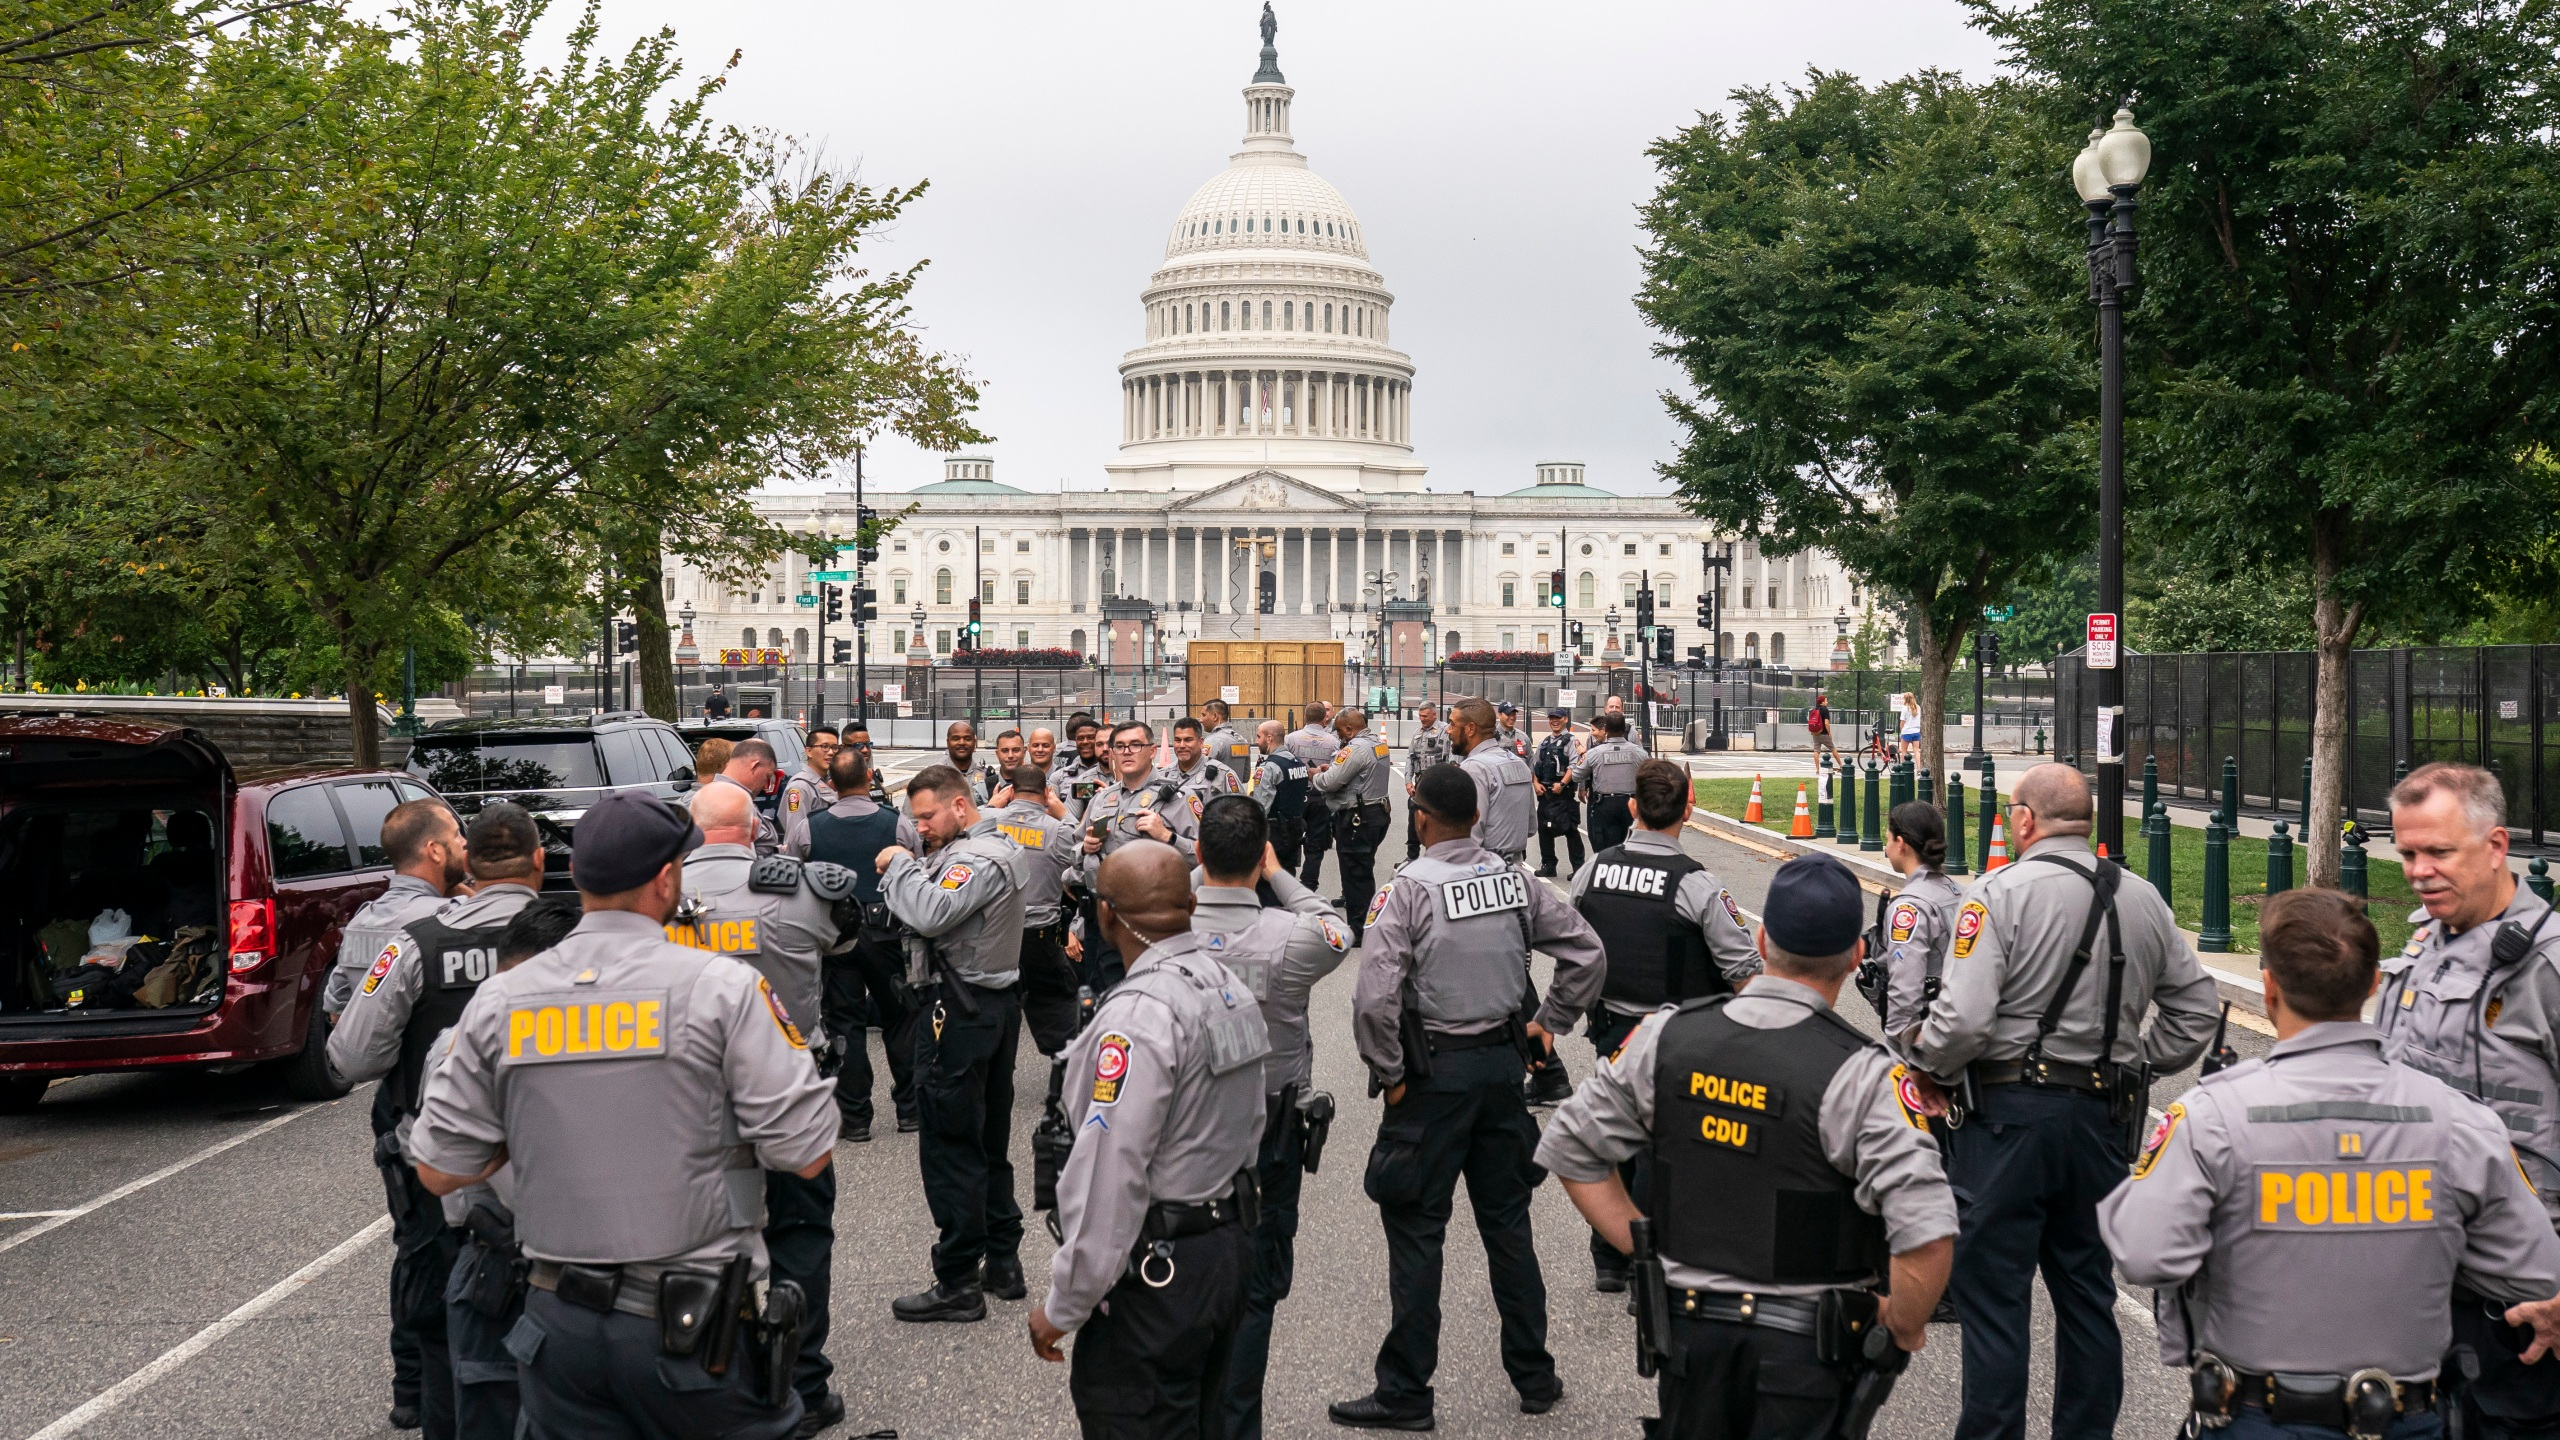 Police stage at a security fence ahead of a rally near the U.S. Capitol in Washington, Saturday, Sept. 18, 2021. (AP Photo/Nathan Howard)